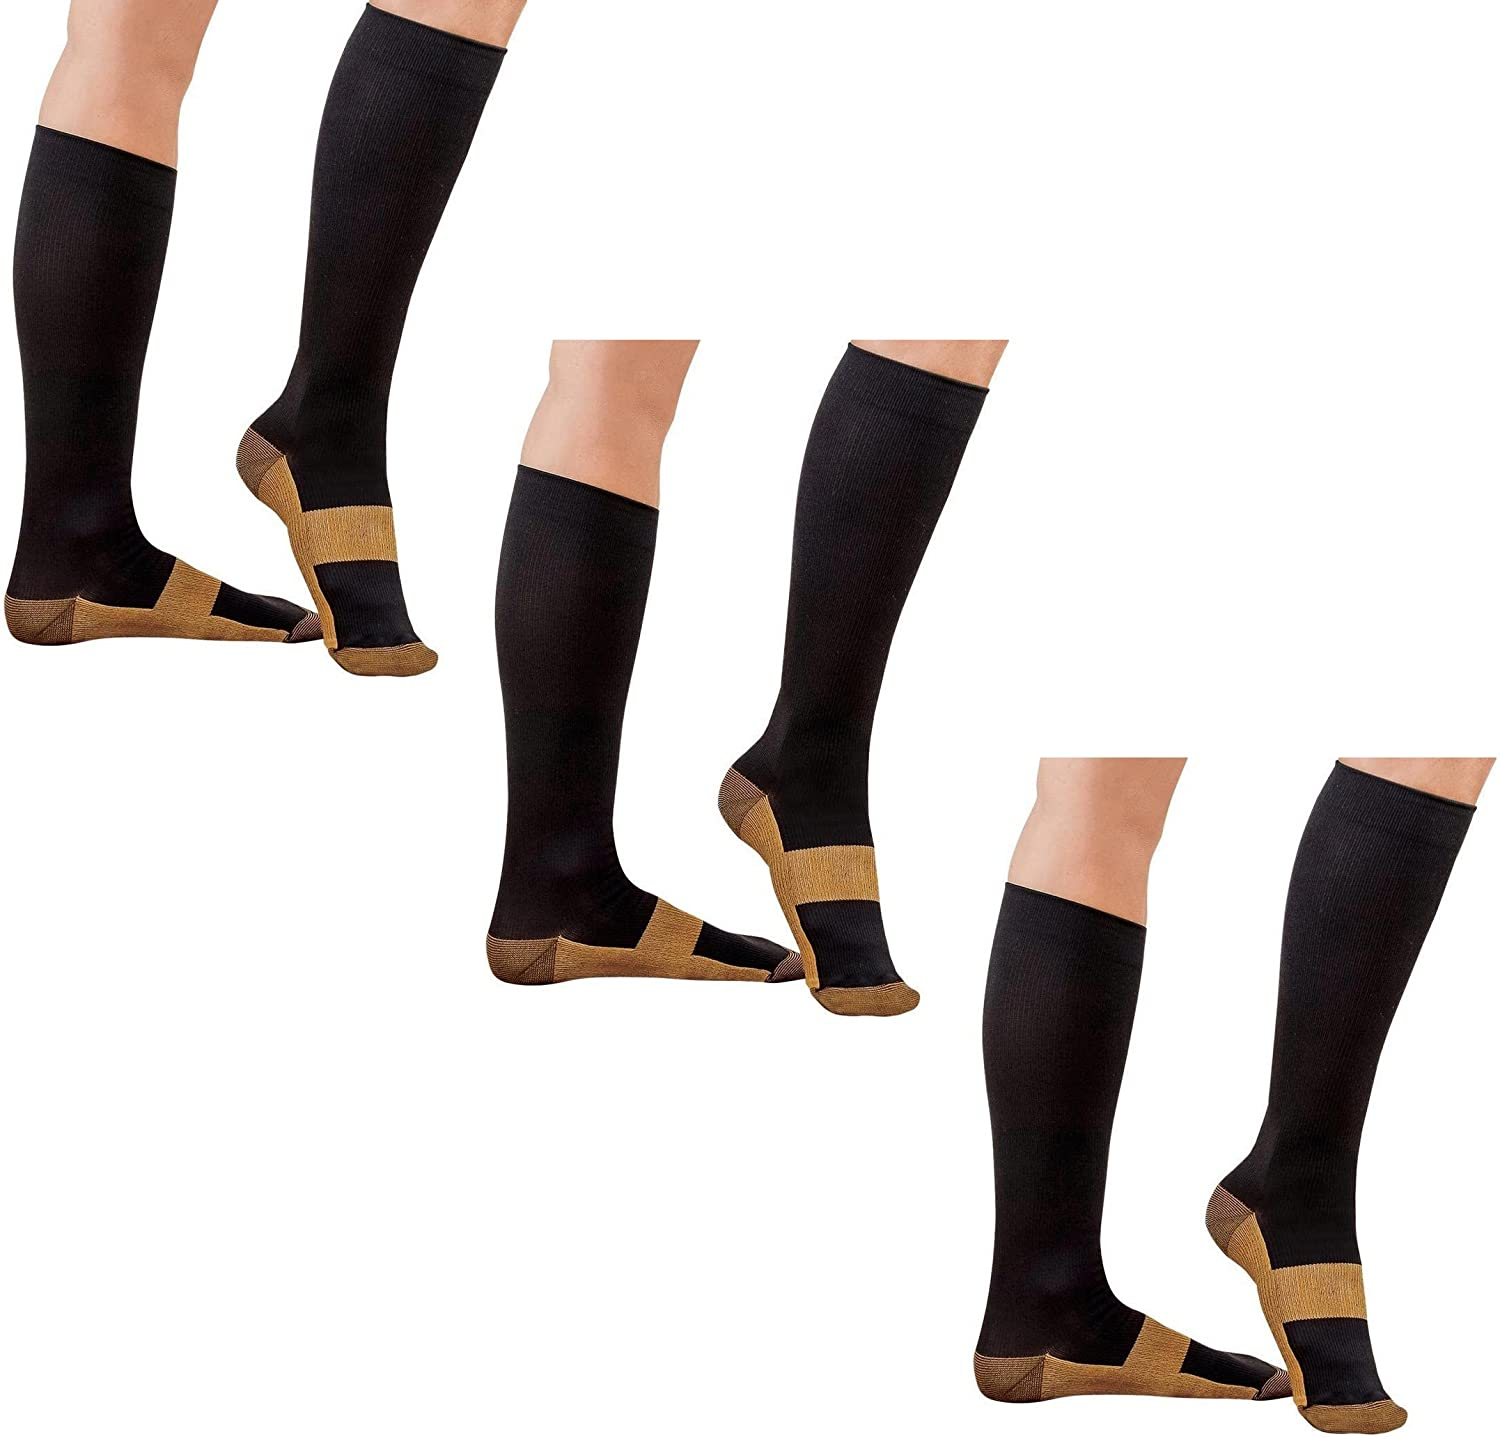 ASRocky Graduated Compression Copper Socks Anti-Fatigue Calf High Below Knee Mens Womens Foot Ankle Heel Support Pain Relief Sport Medical Stockings Reduce Swelling (3Pr, Lg/XL, Blk/Cu)